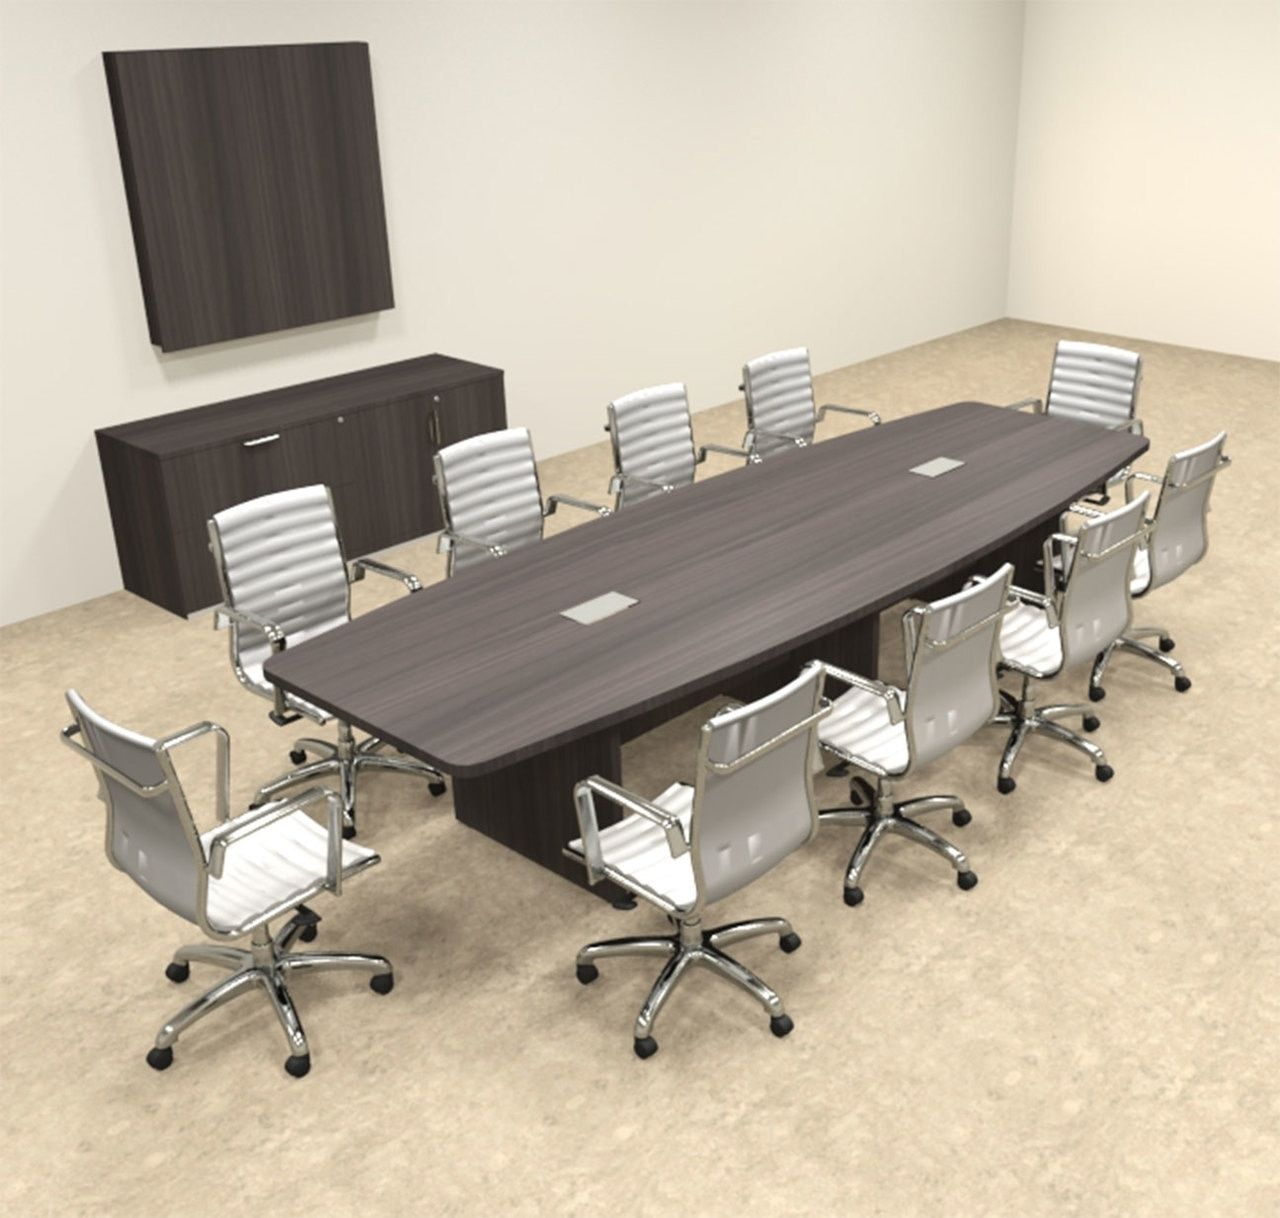 Modern Boat Shapedd 12 Feet Conference Table Of Con C134